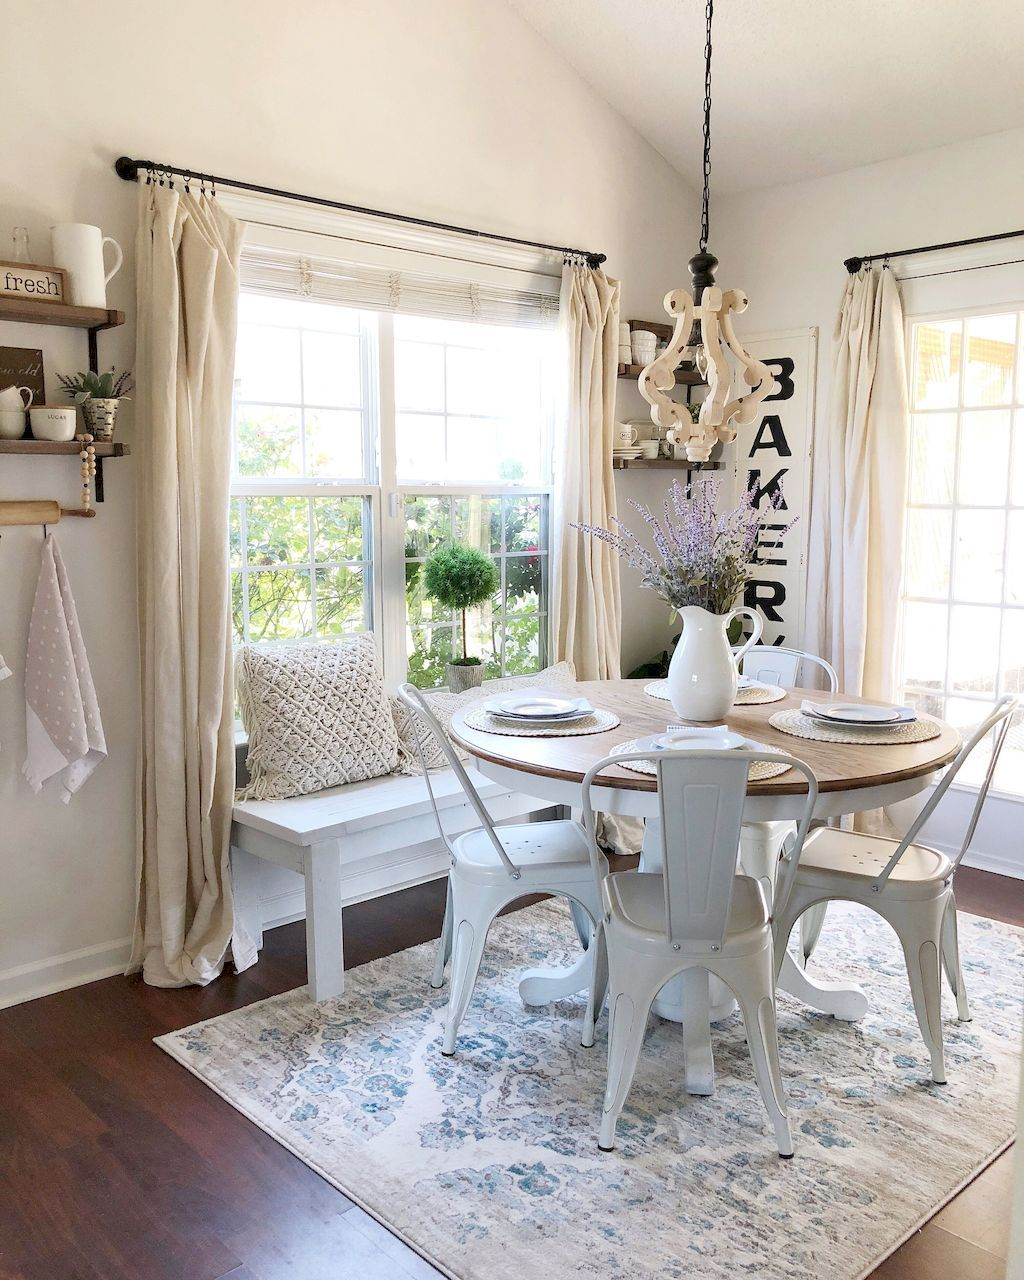 85 Beautiful Farmhouse Living Room Curtains Decor Ideas ... on Farmhouse Curtain Ideas For Living Room  id=56621